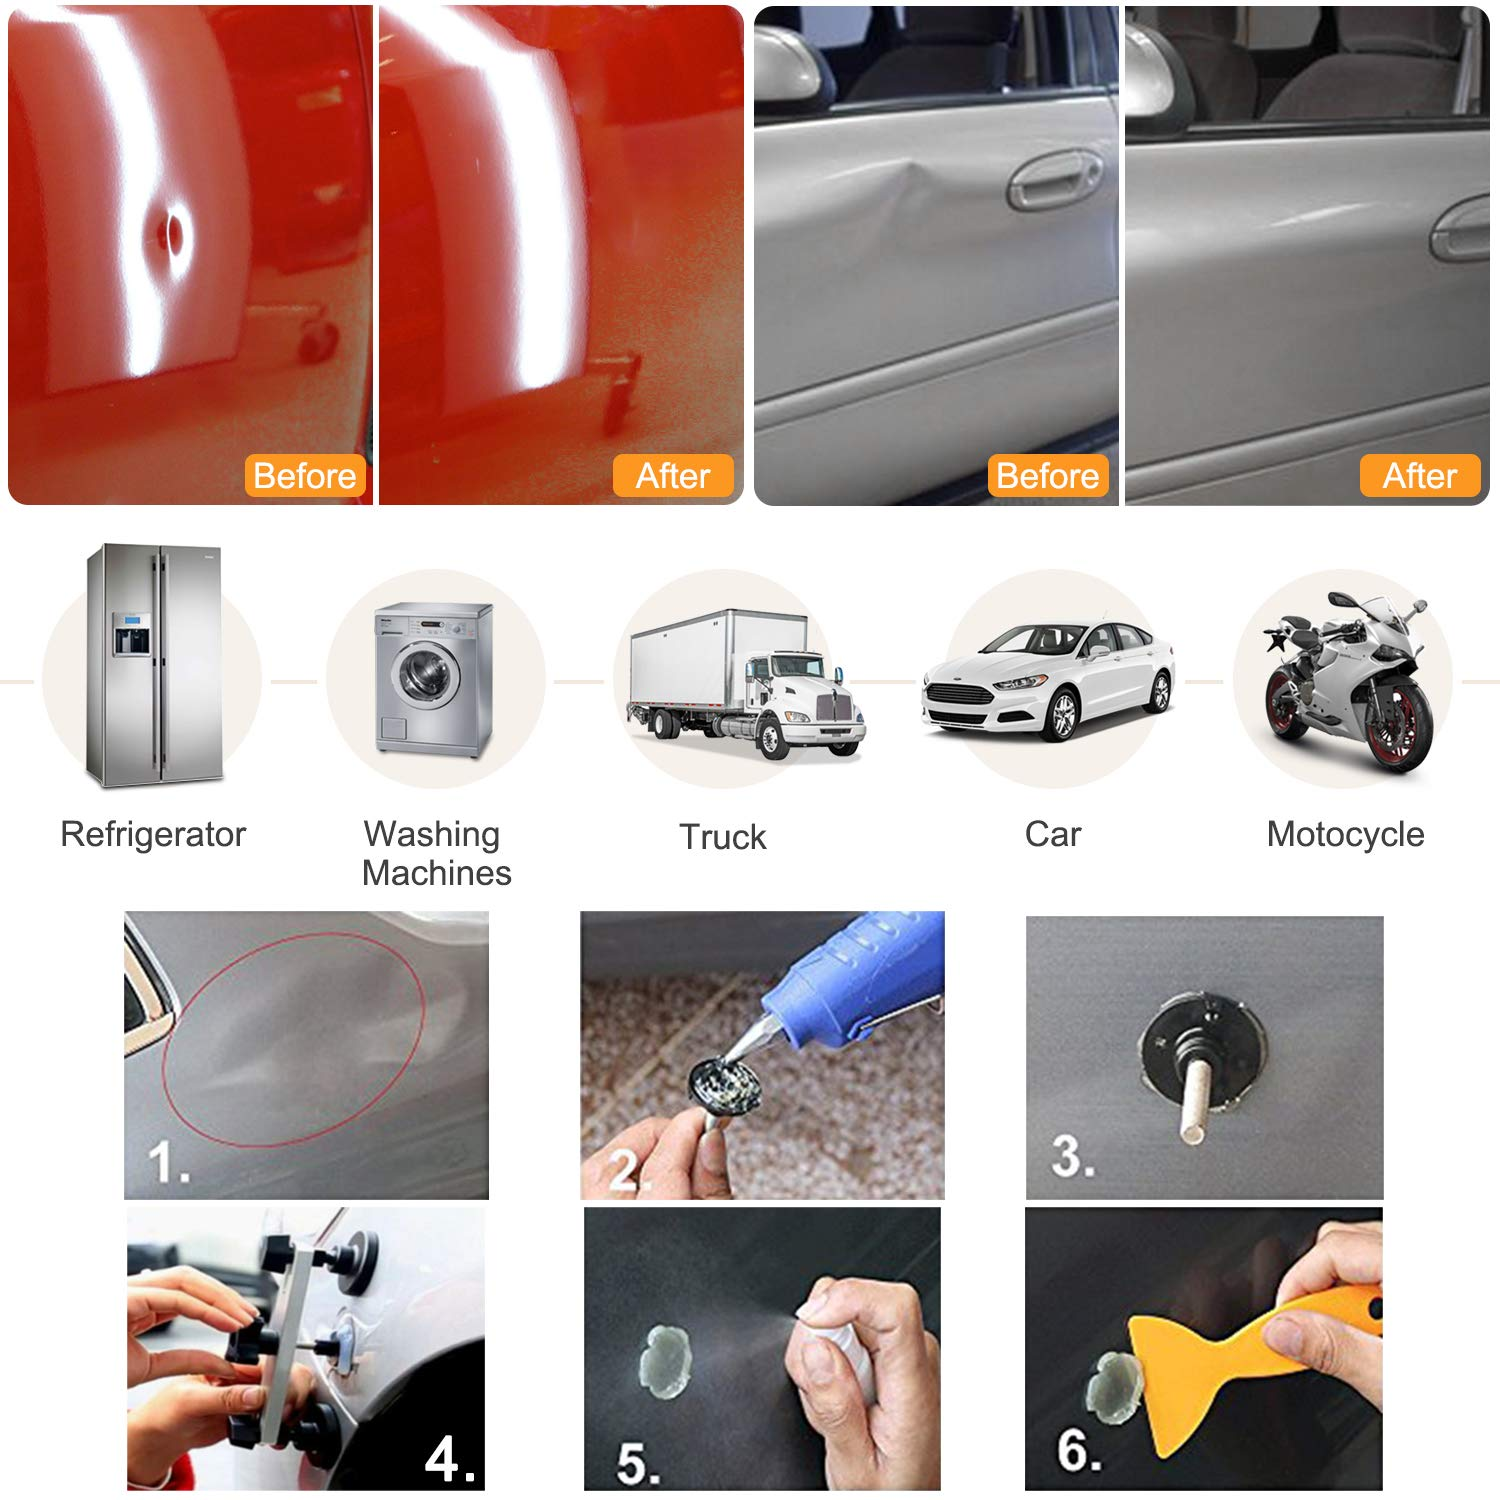 Danti 92pcs Auto Body Repair Tools with Bag, Car Dent Puller with Double Pole Bridge Dent Puller, Glue Puller Tabs, Glue Shovel for Auto Dent Removal, Minor dents, Door Dings and Hail Damage by Danti (Image #2)